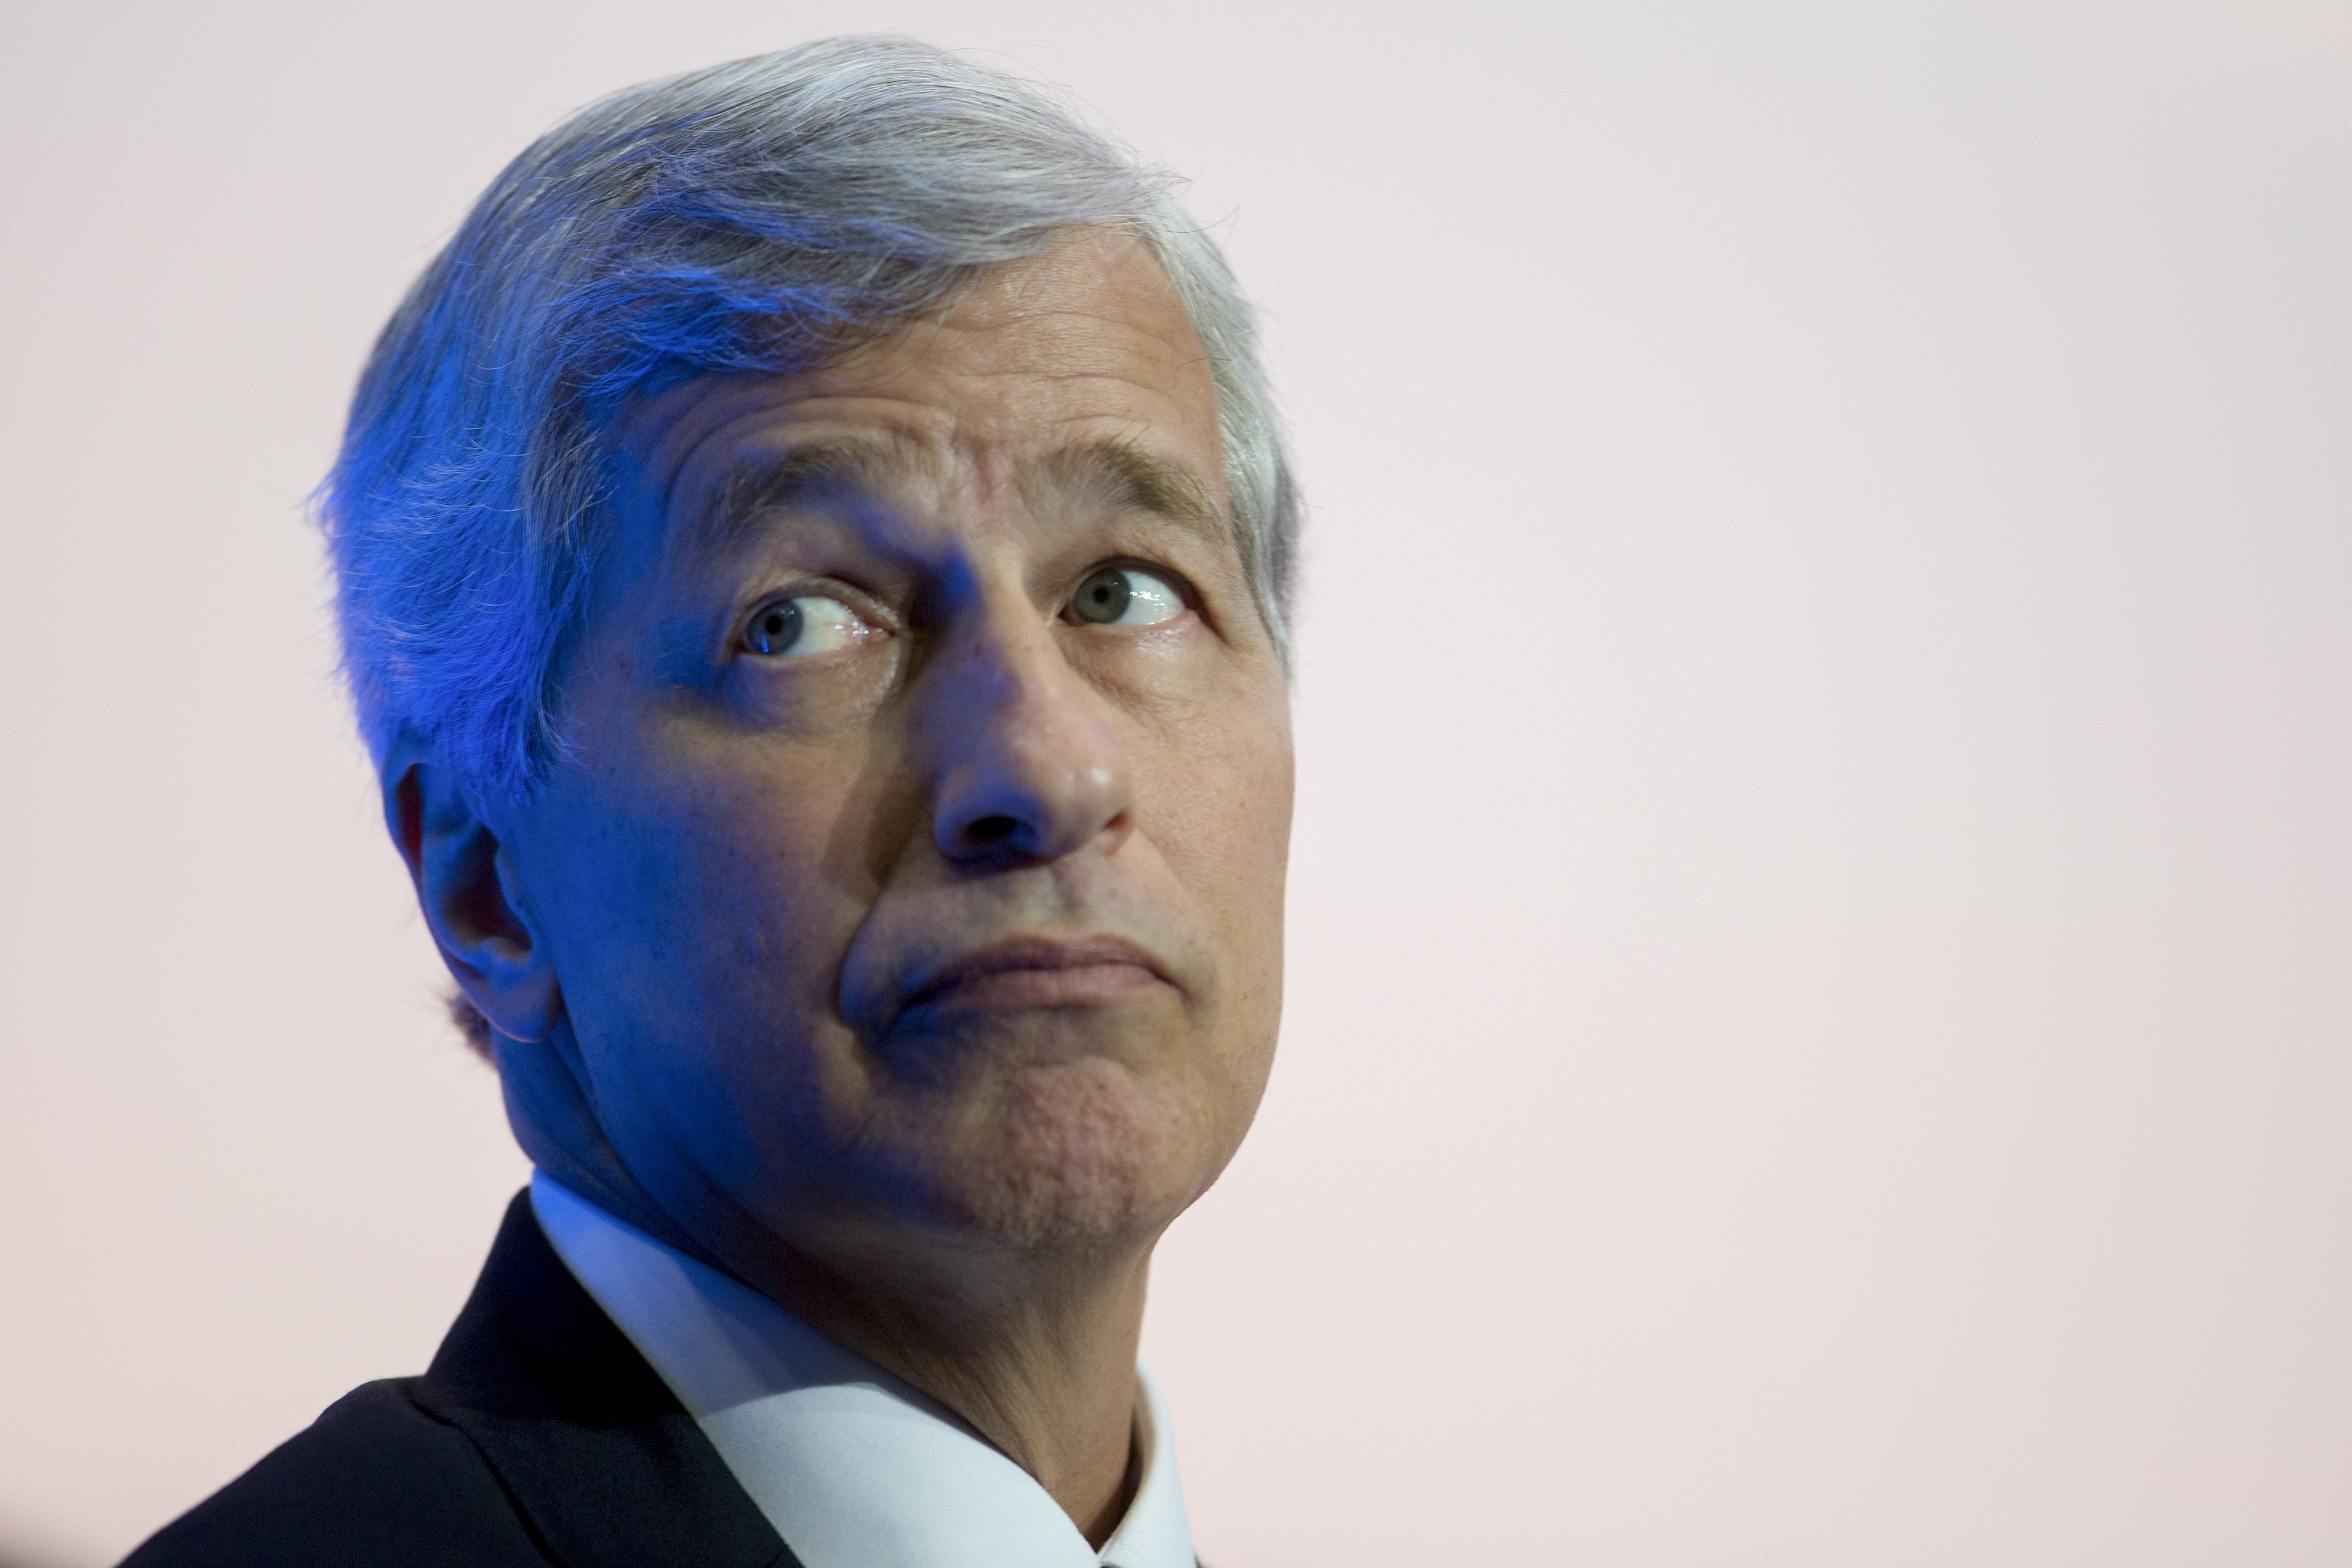 JPMorgan Chase & Co. CEO Jamie Dimon Speaks At An Institute Of International Finance Panel